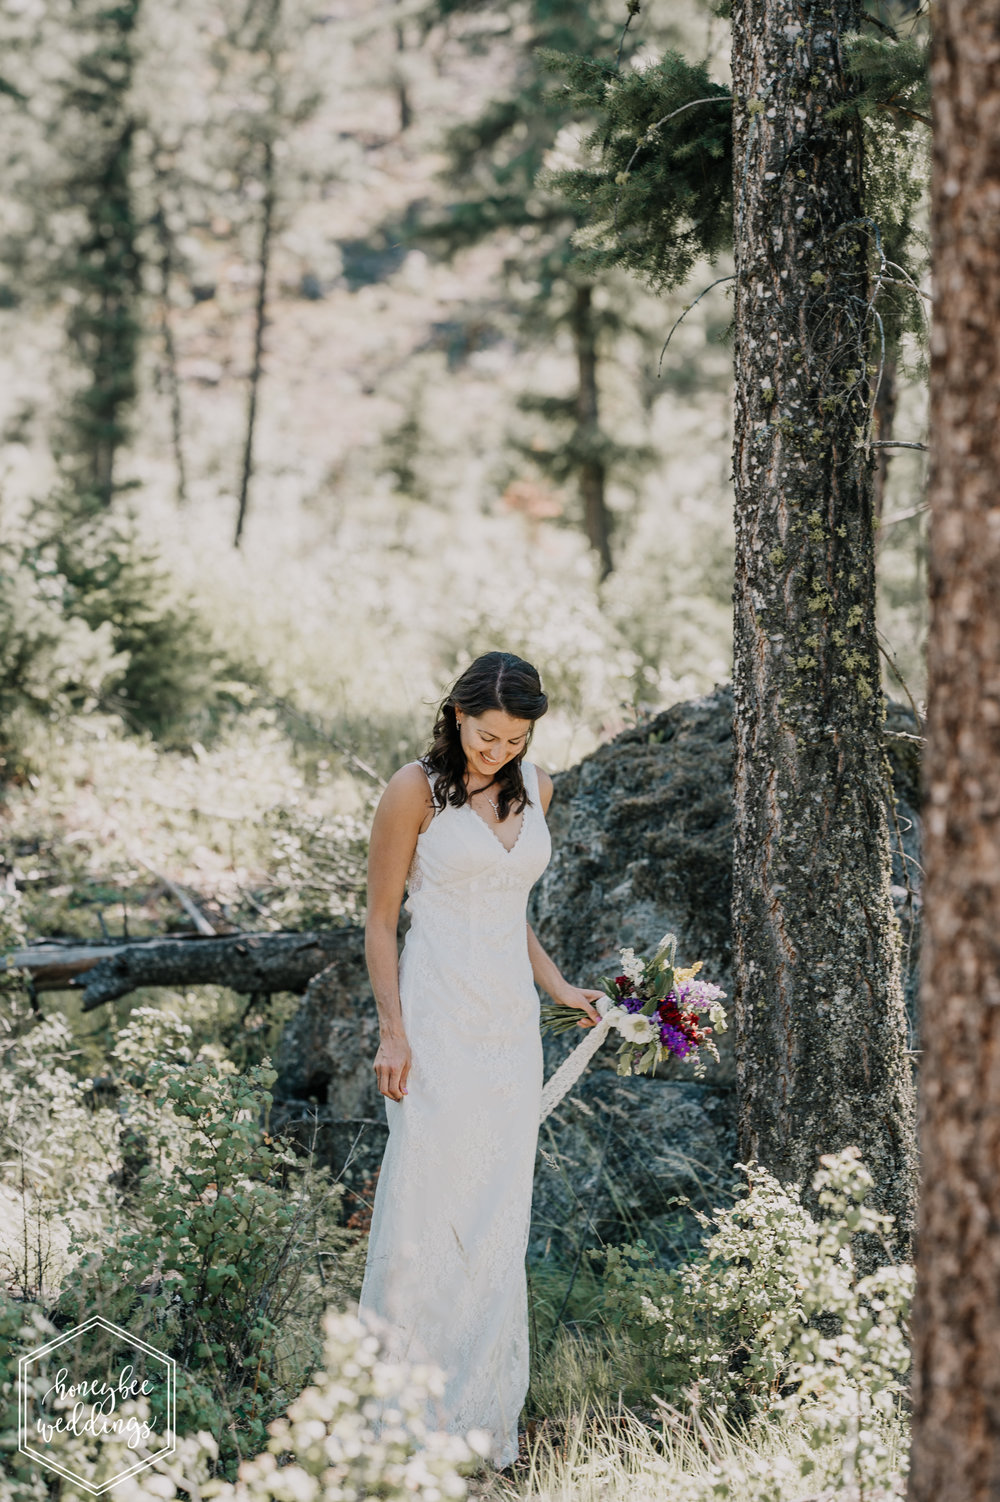 211 White Raven Wedding_Montana Wedding Photographer_Honeybee Weddings_ Meghan Maloney + Arza Hammond 2018-8491.jpg